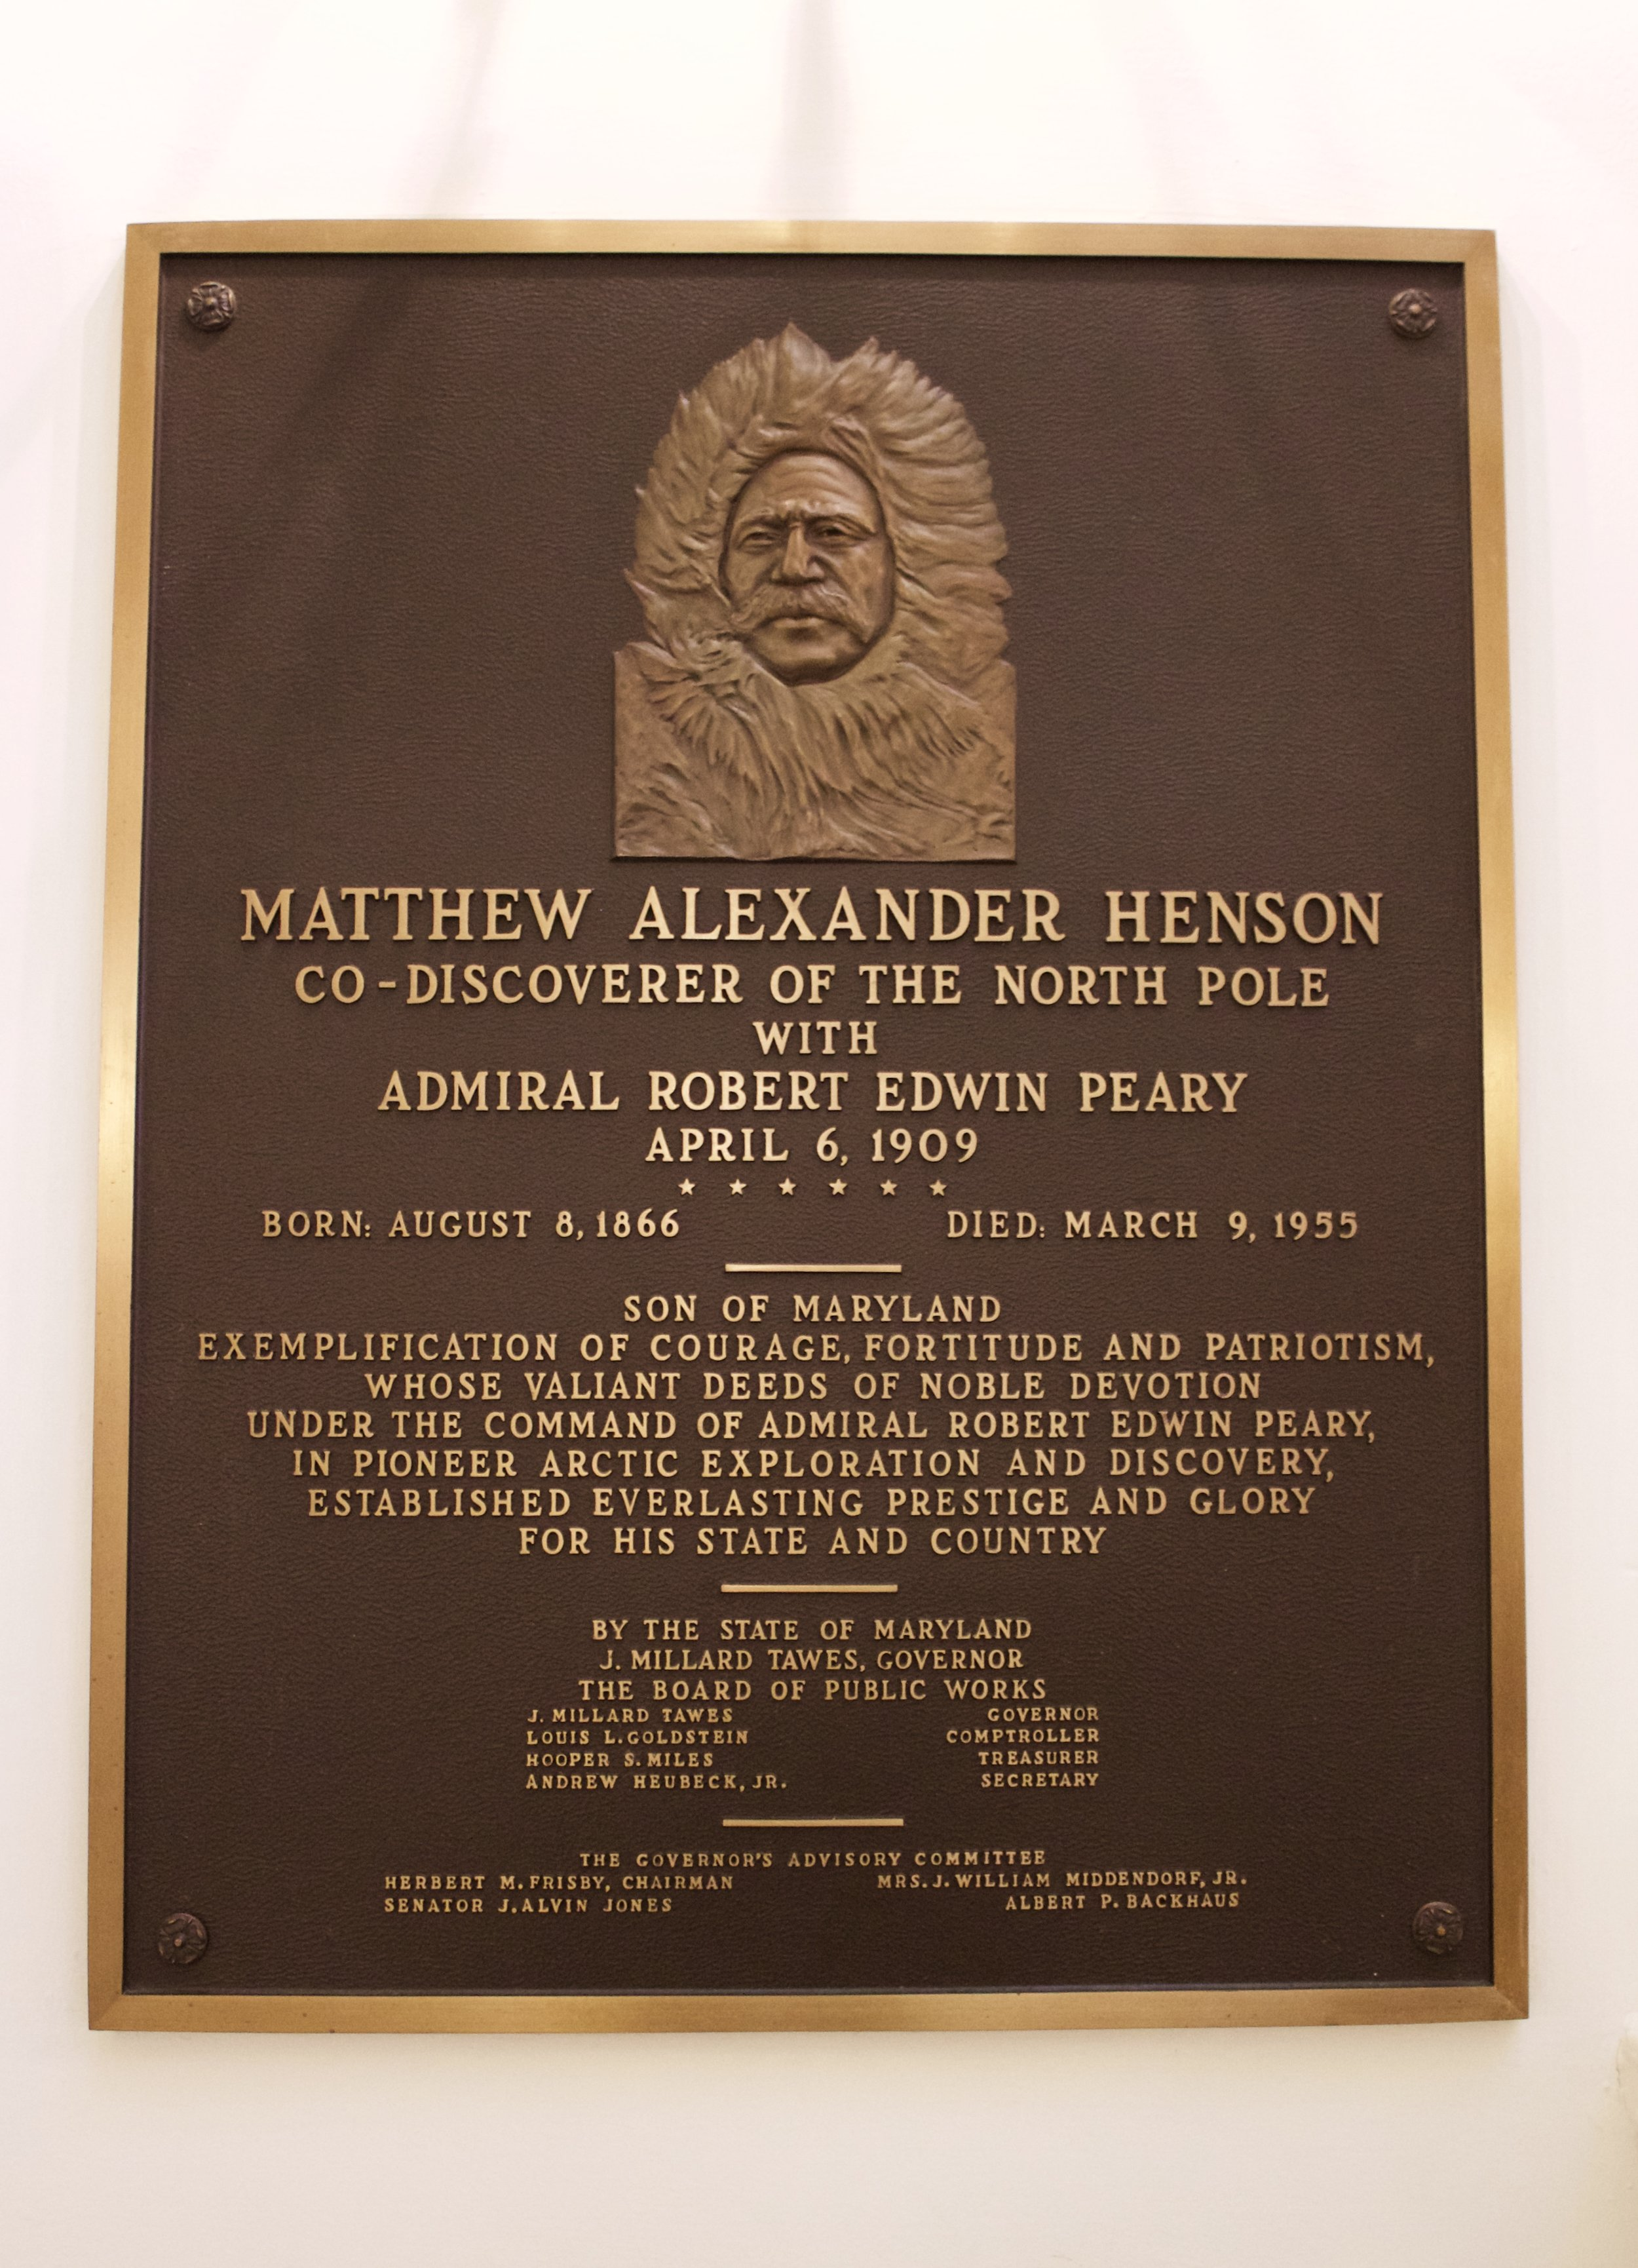 Matthew Henson, co-disocverer of the North Pole, was born in Maryland in 1866